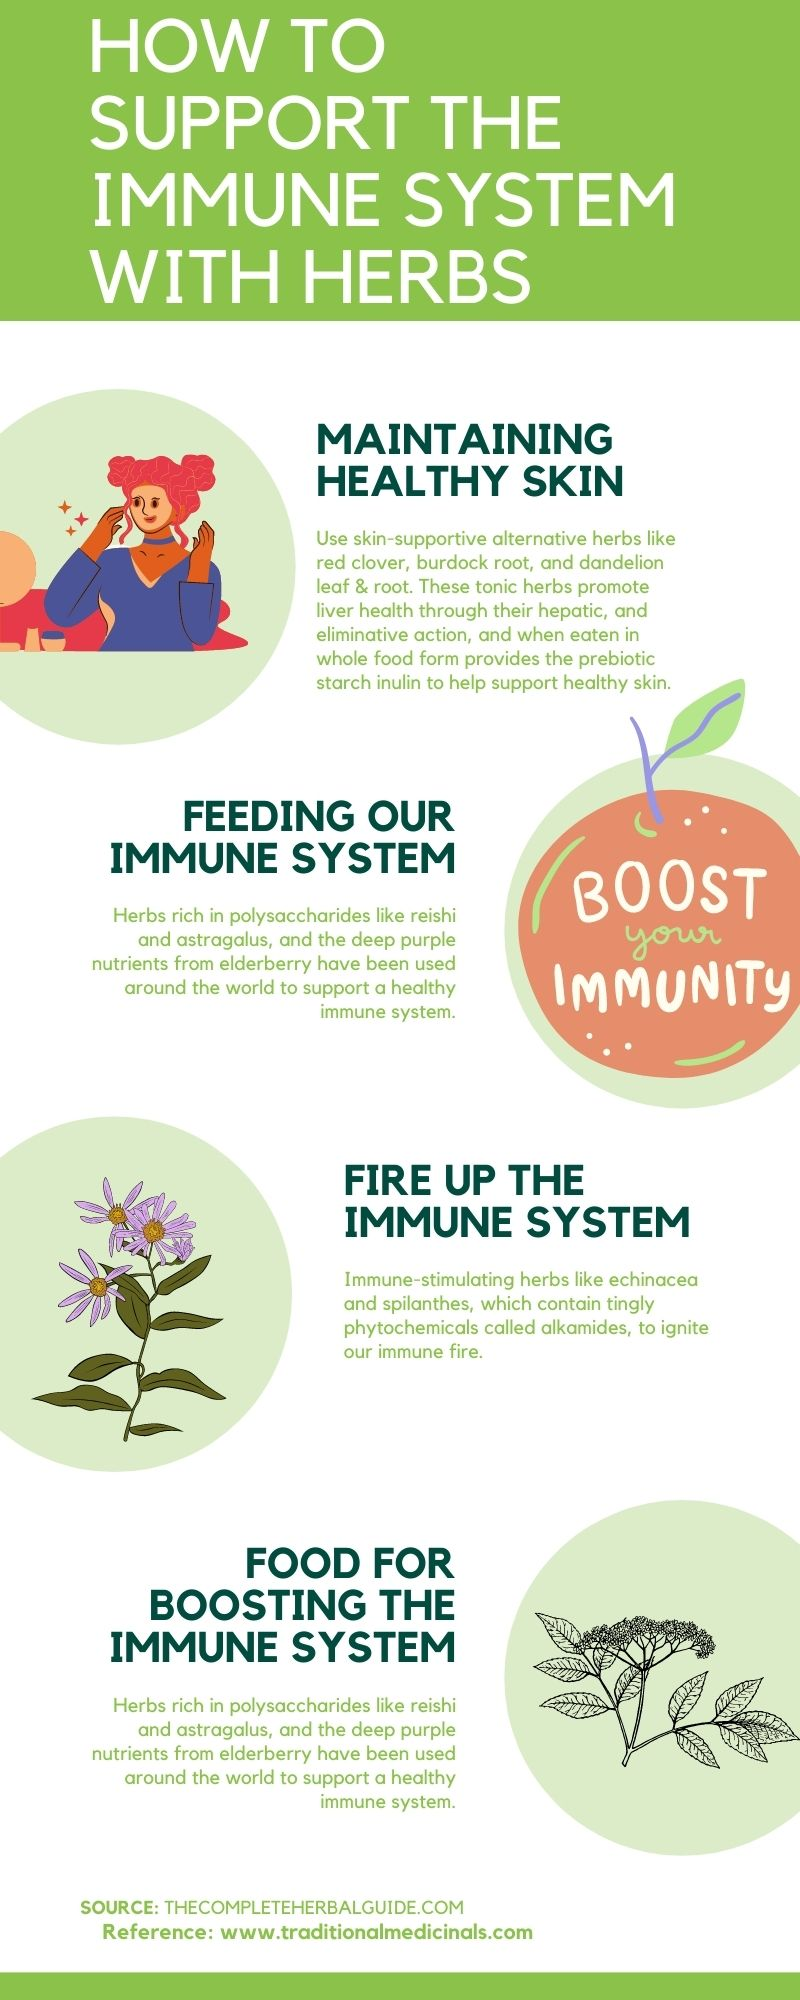 How to Support the Immune System with Herbs